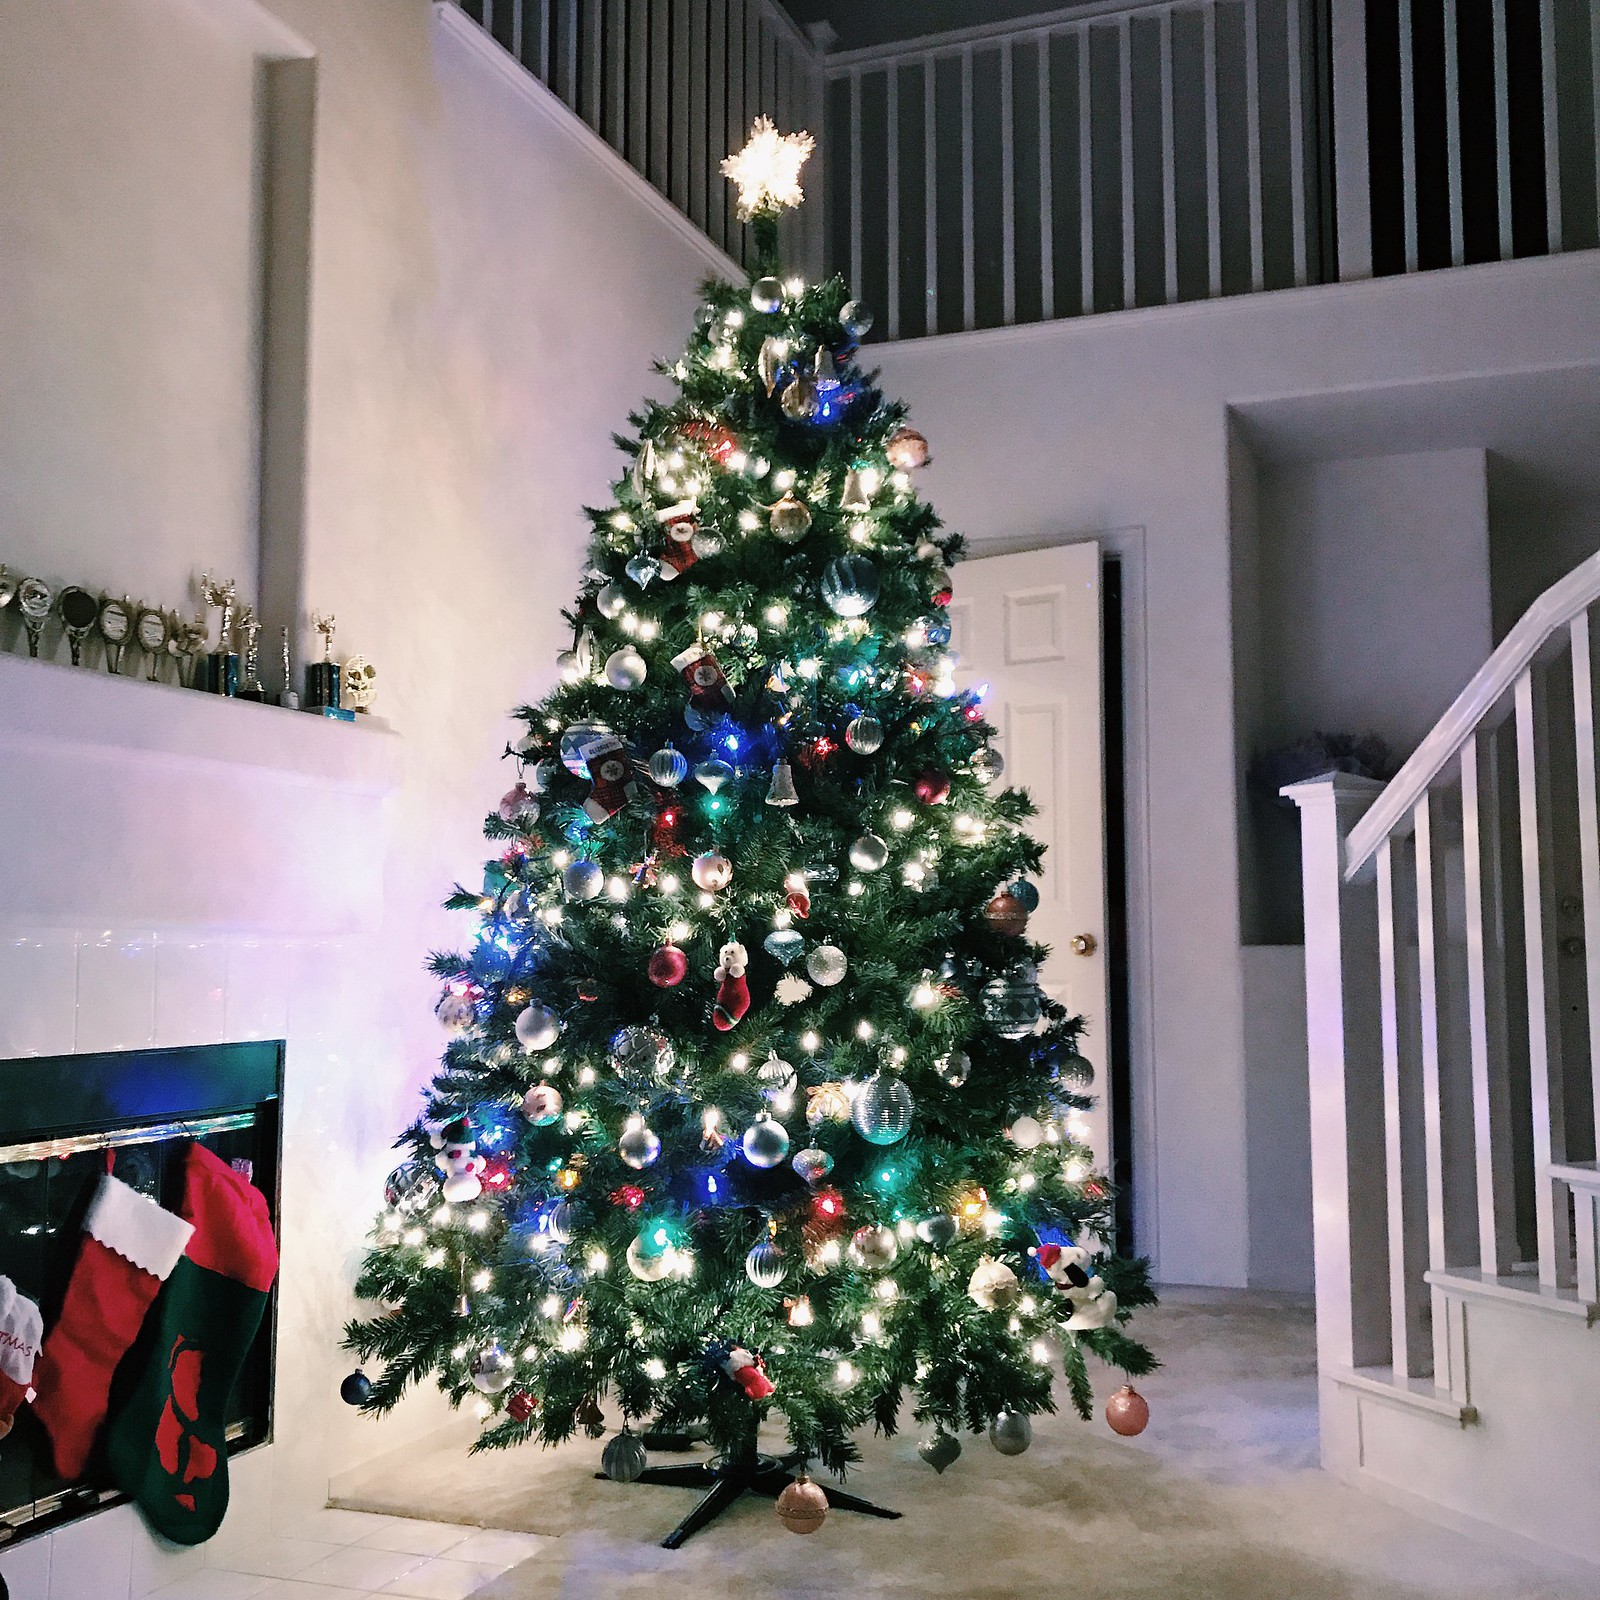 0254-christm-as-christmastree-interiors-decor-interiordecor-lifestyle-hipster-minimal-elizabeeetht